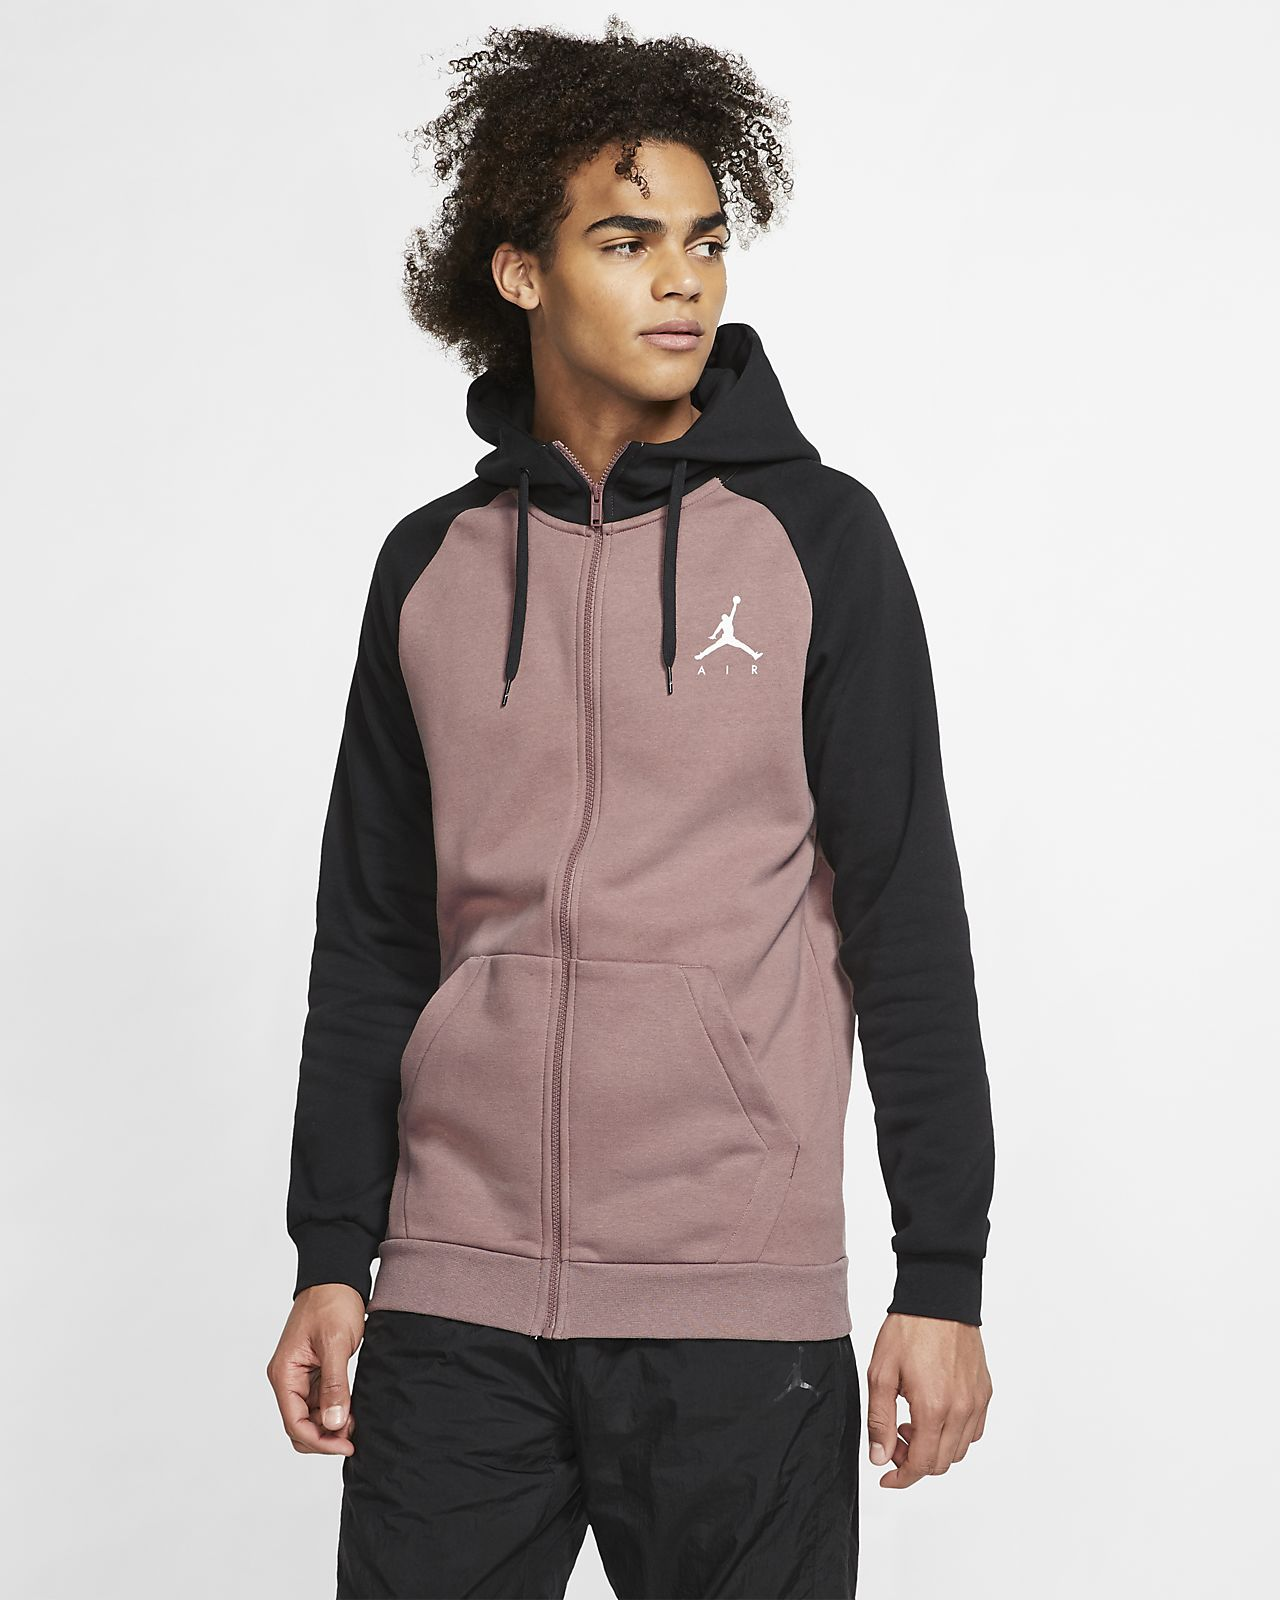 bcaff38eb12 Jordan Jumpman Men's Fleece Full-Zip Hoodie. Nike.com